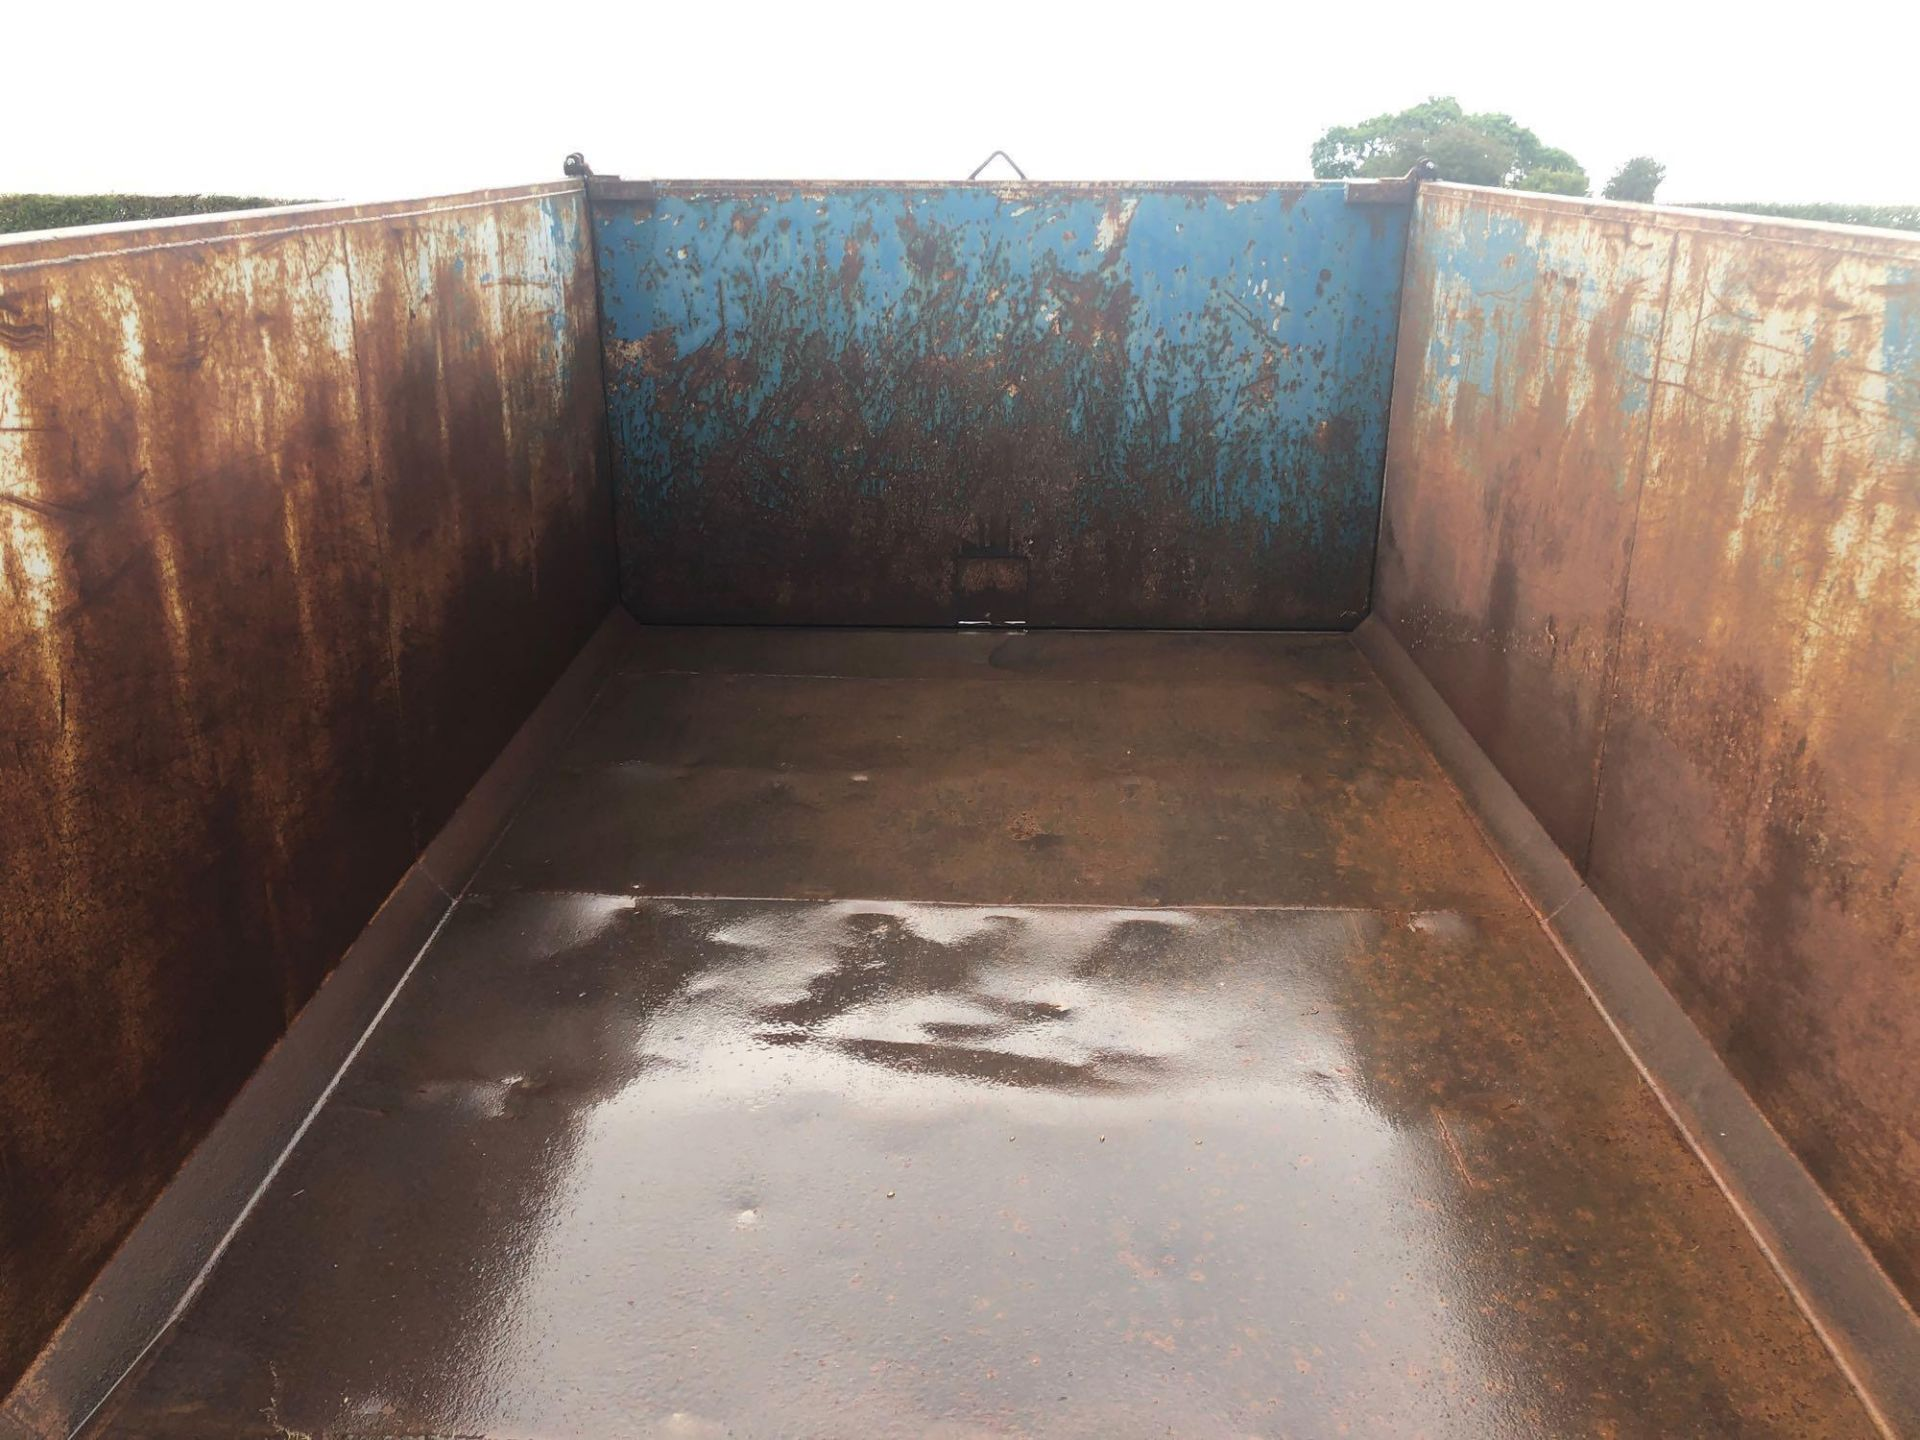 8t twin axle trailer with manual rear door and grain chute. C/w silage sides. On 12.5/80-15.3 wheels - Image 5 of 8